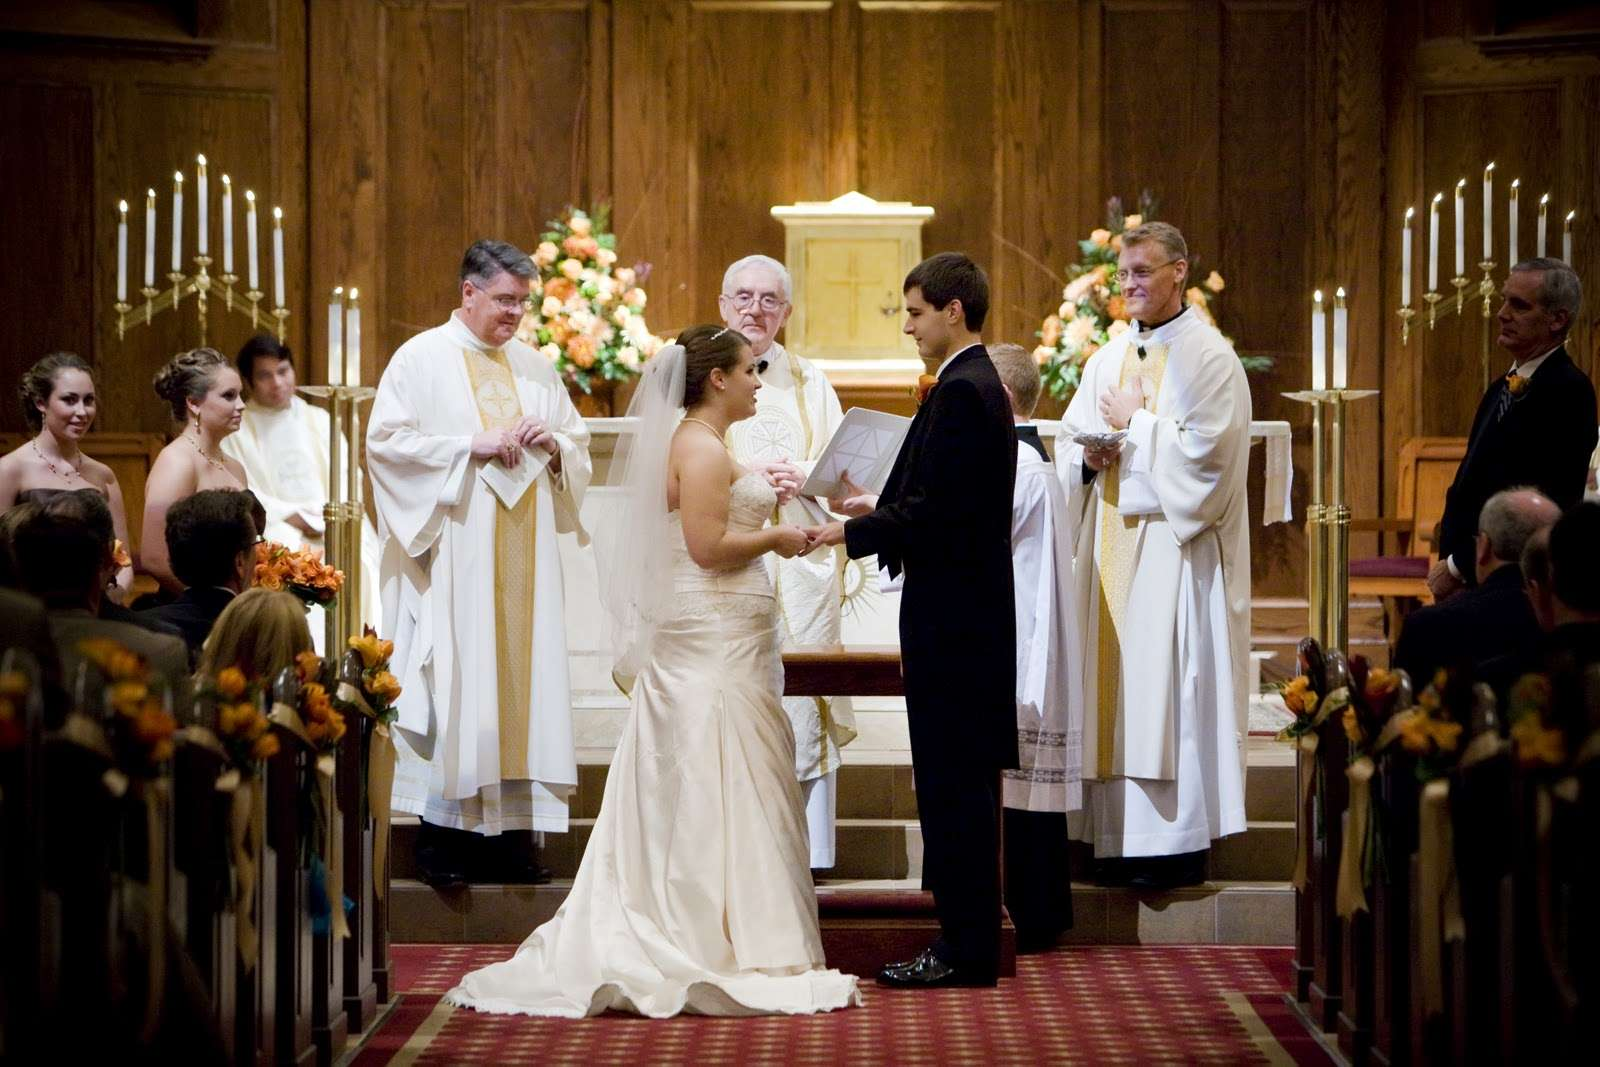 Christian Wedding Traditions, Ritual, And Their Meanings